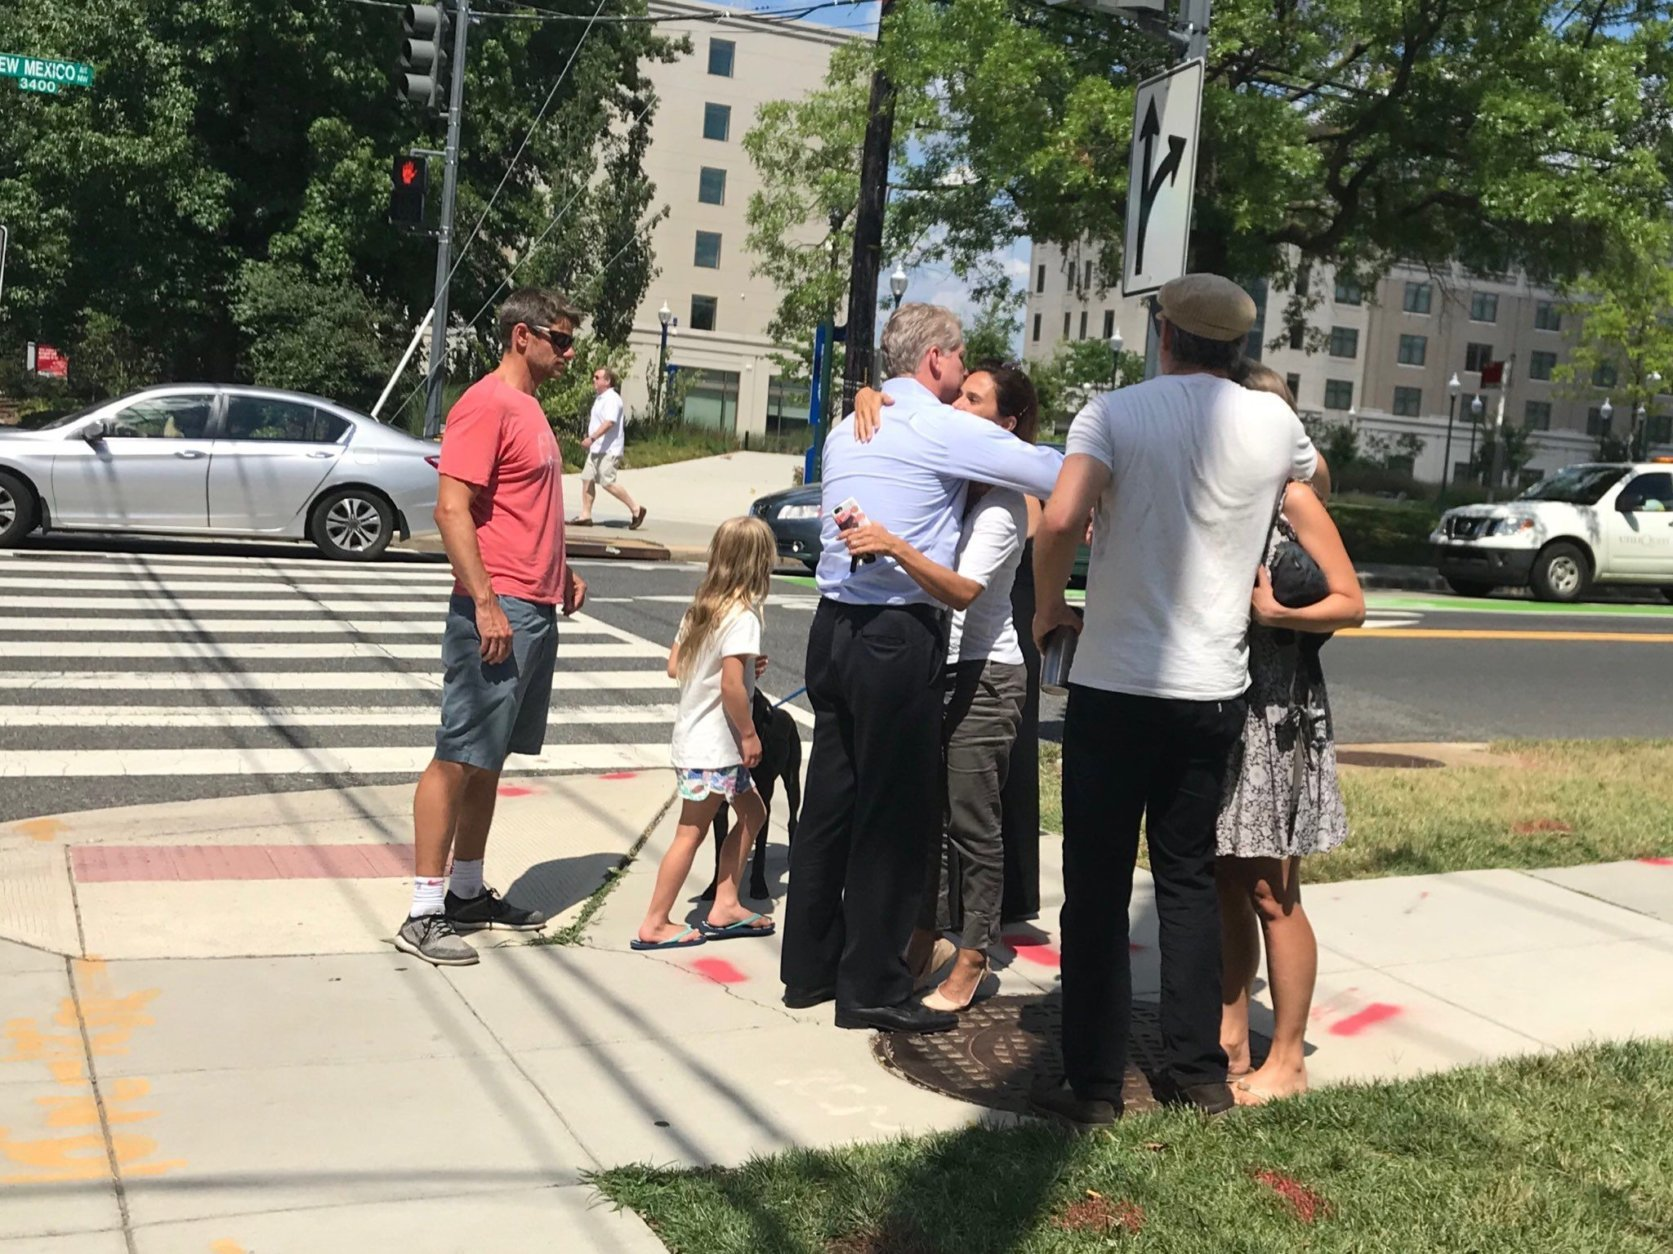 Concerned parents of children attending a basketball camp at Bender Arena gather near AU's main campus. (WTOP/Dick Uliano)